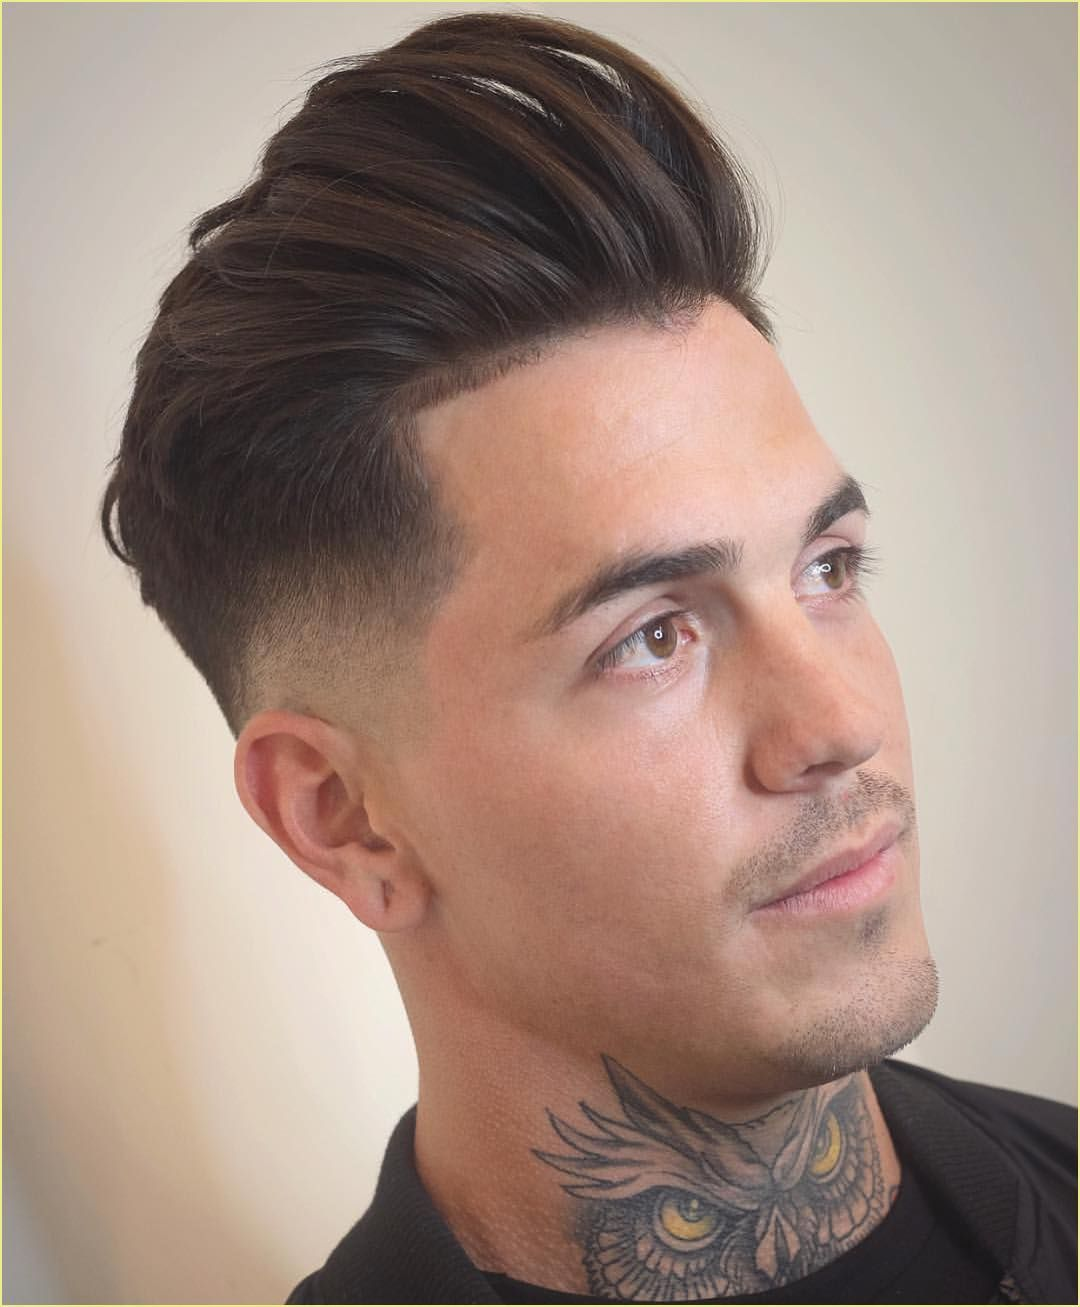 60er Jahre Frisur Manner 60er Jahre Frisur Manner 60er Jahre Frisur Manner Undercut Frisur S In 2020 Mens Hairstyles Mens Hairstyles Short Mens Hairstyles Pompadour